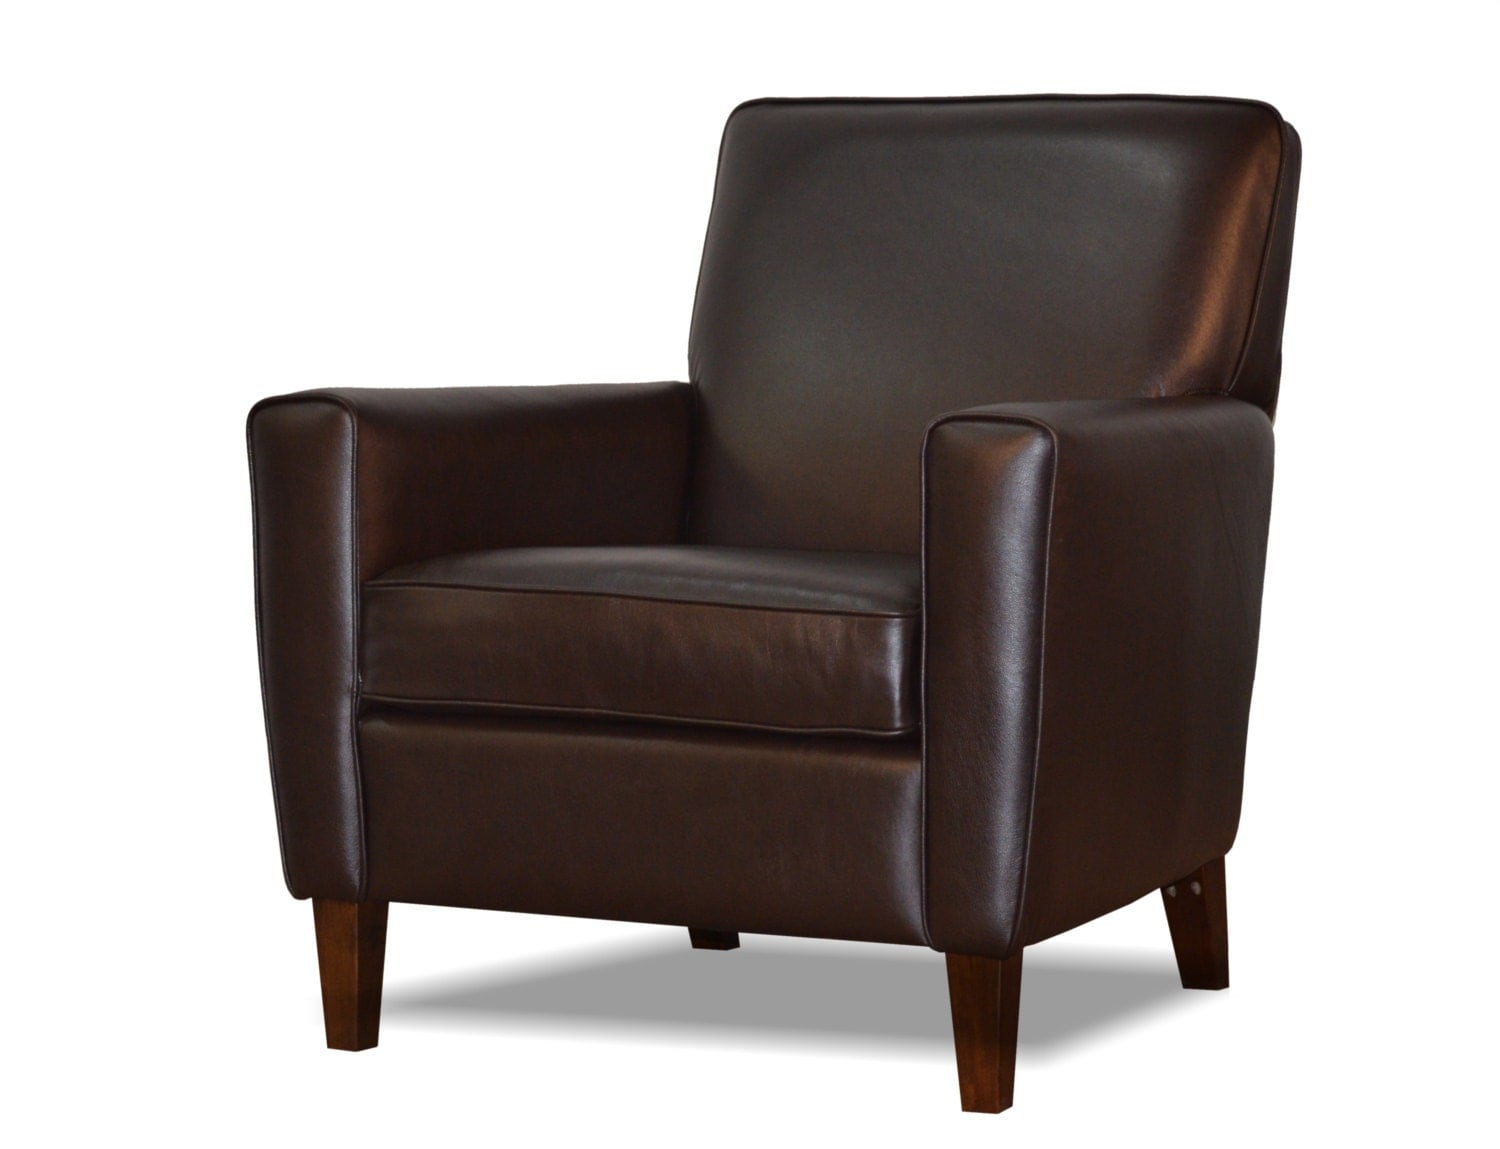 Leather Accent Chair With Ottoman Genuine Espresso Brown Leather Accent Chair Ottoman Club Chair